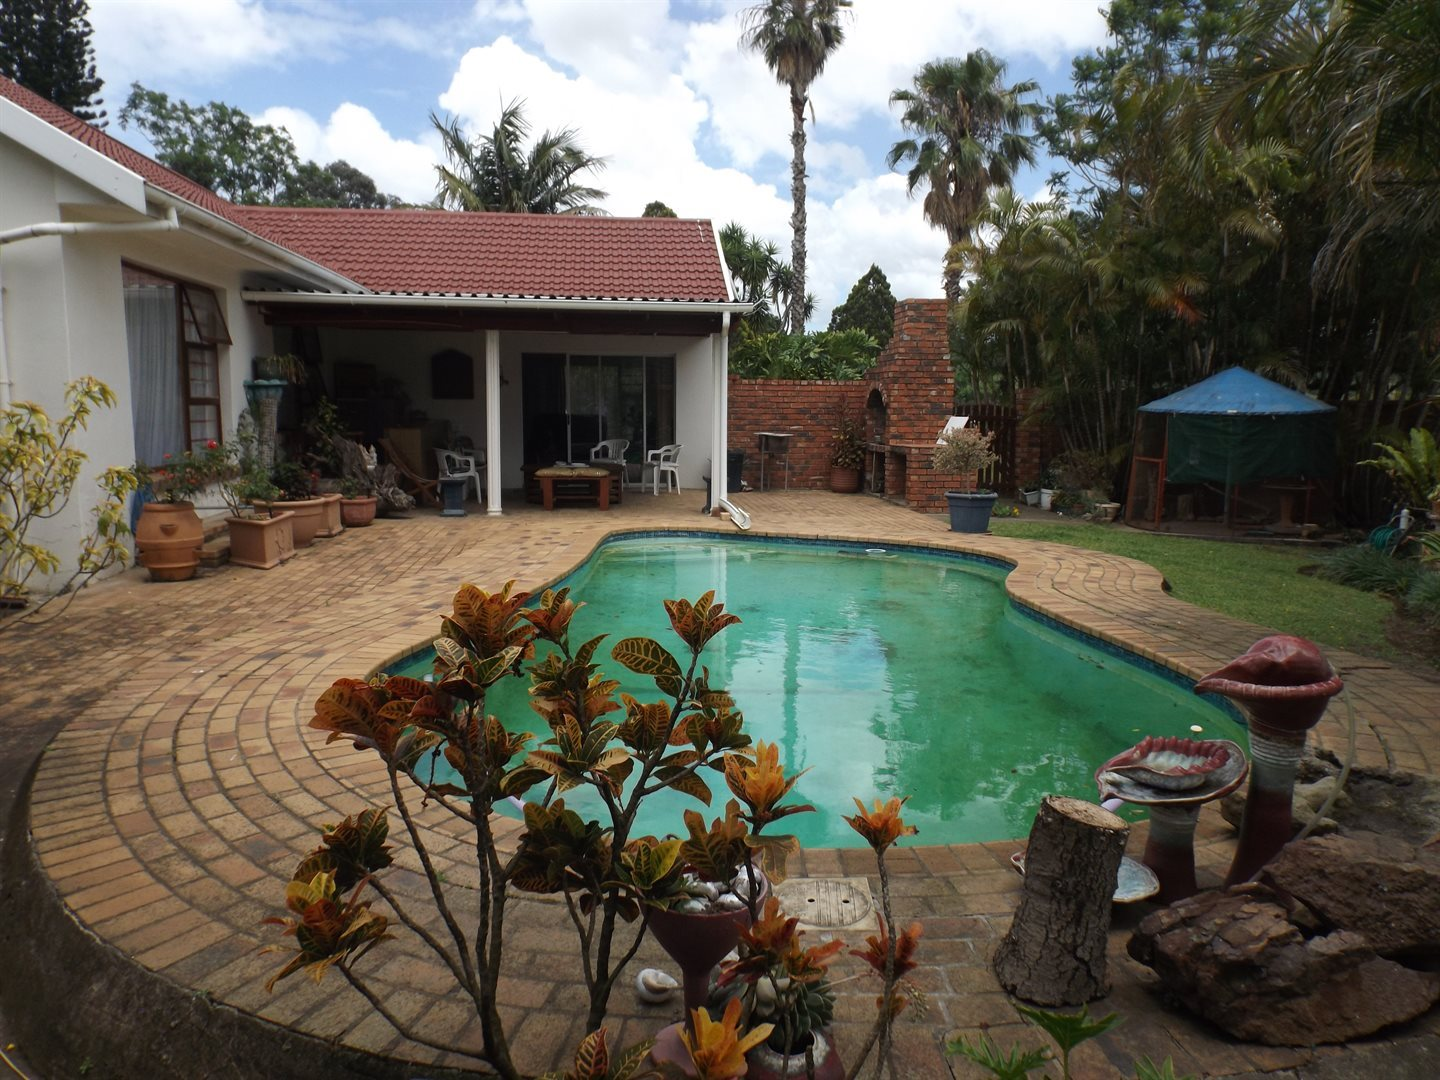 Property for Sale by DLC INC. ATTORNEYS Teresa De La Querra, House, 3 Bedrooms - ZAR 1,850,000